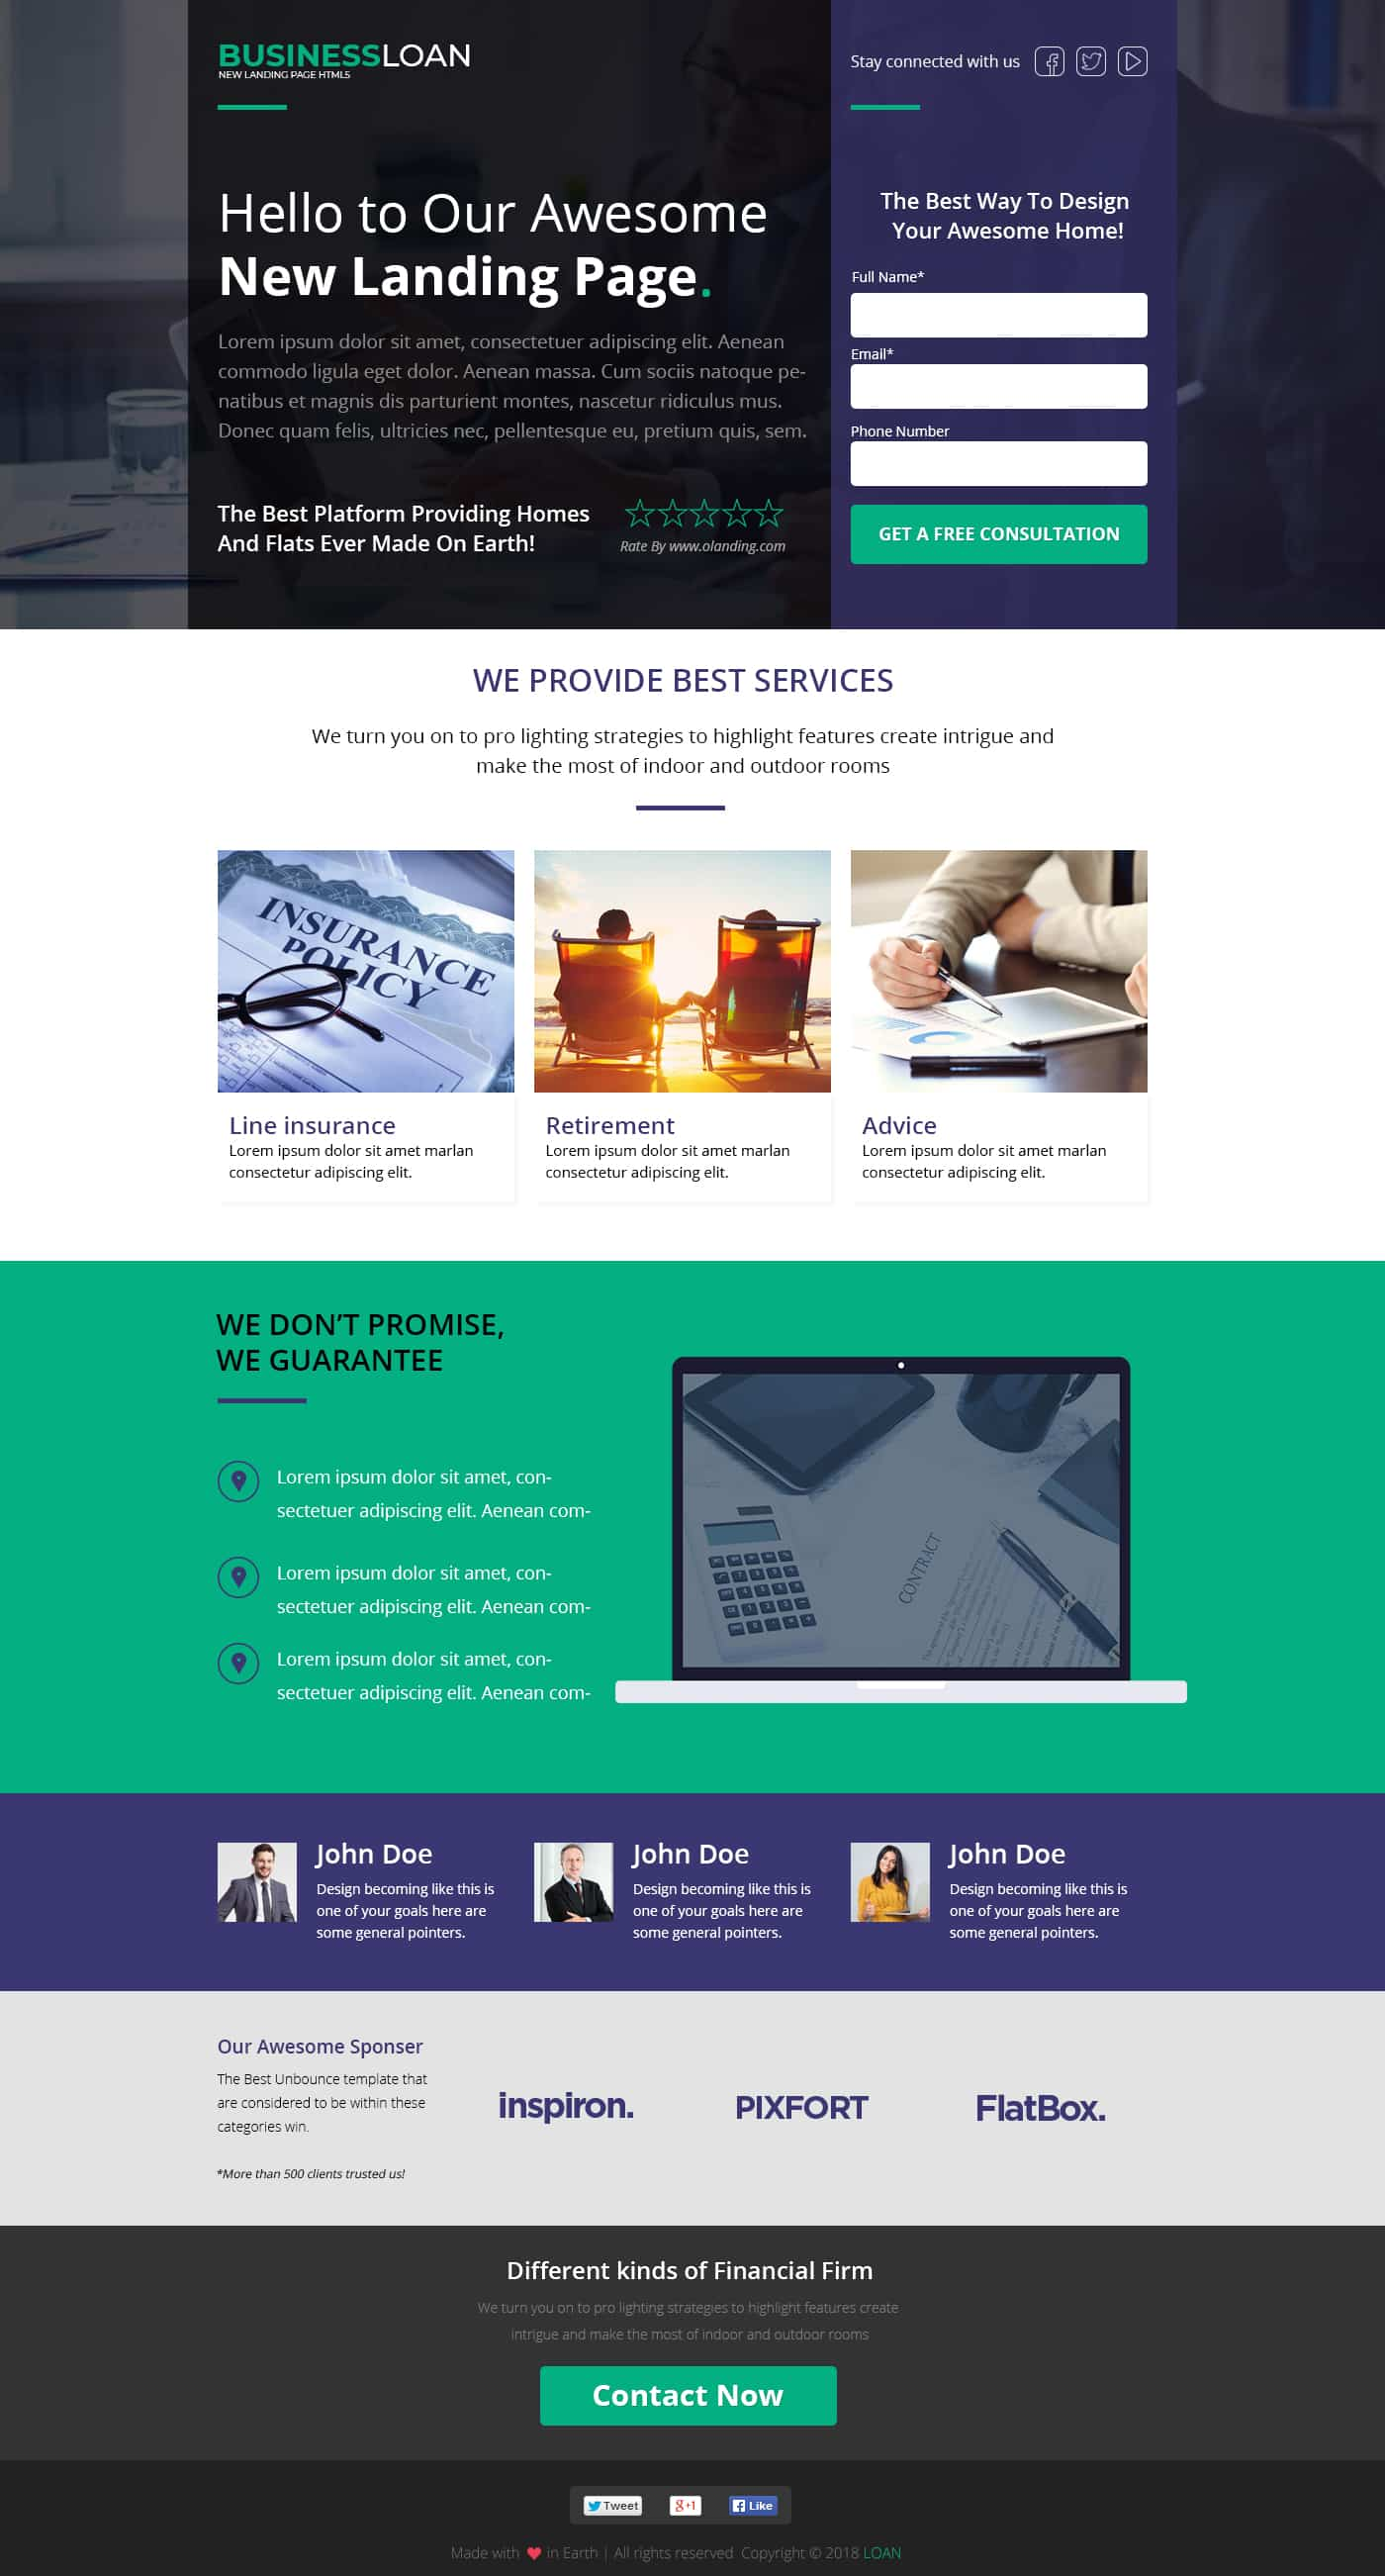 Business Loan Landing Page